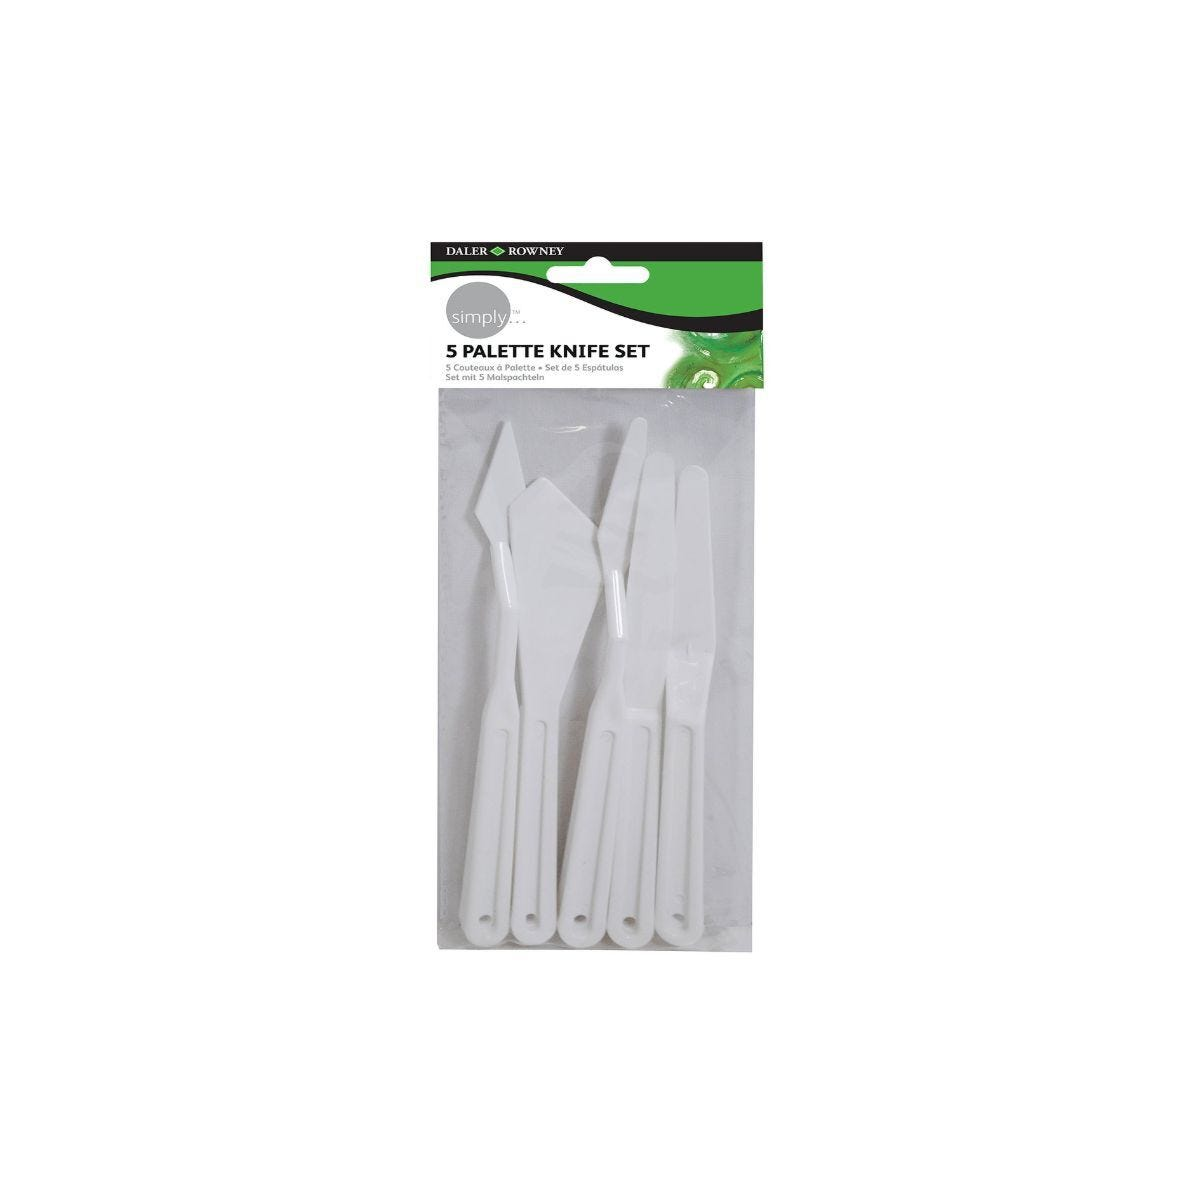 Daler Rowney Simply Palette Knives Pack of 5